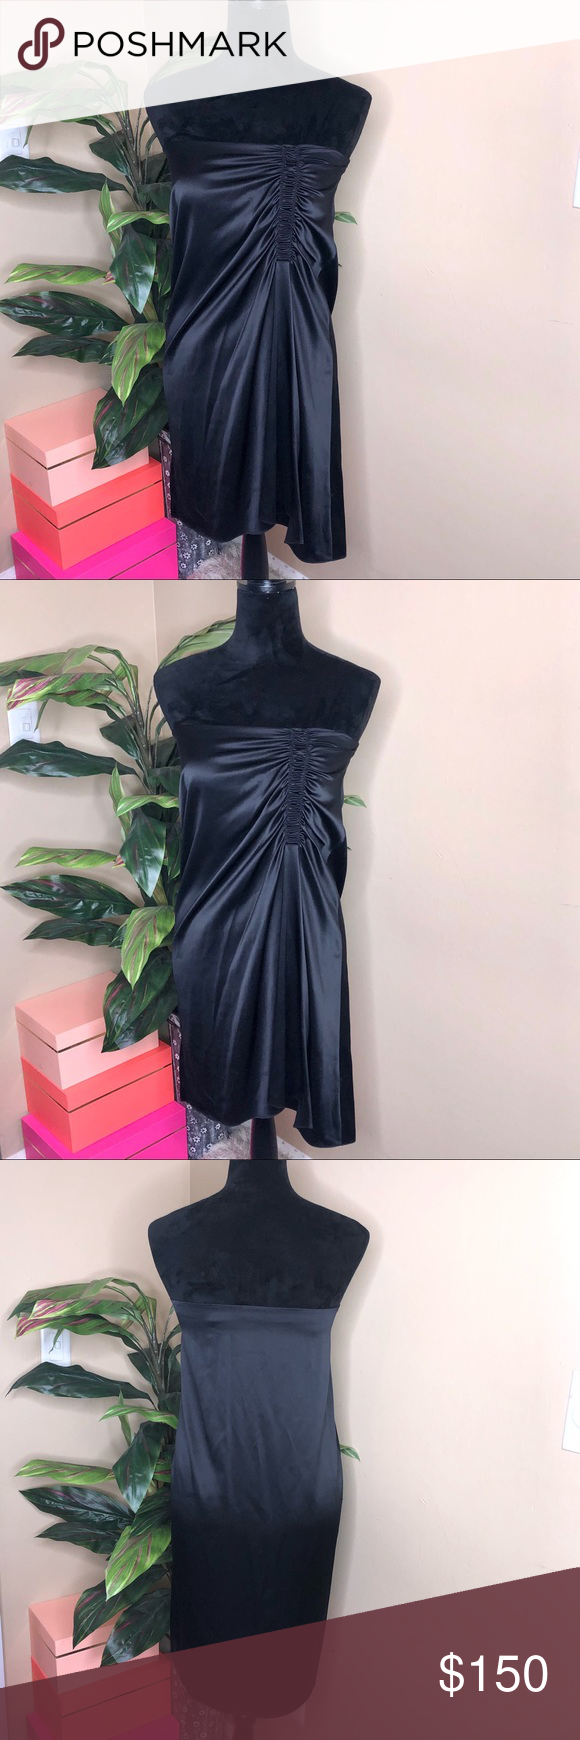 NWOT Theory Strapless Silk Dress Absolutely stunning and flawless Size 2  NWOT worn once 93% silk  7% elastane The perfect silky little black dress Theory Dresses Mini #myposhpicks